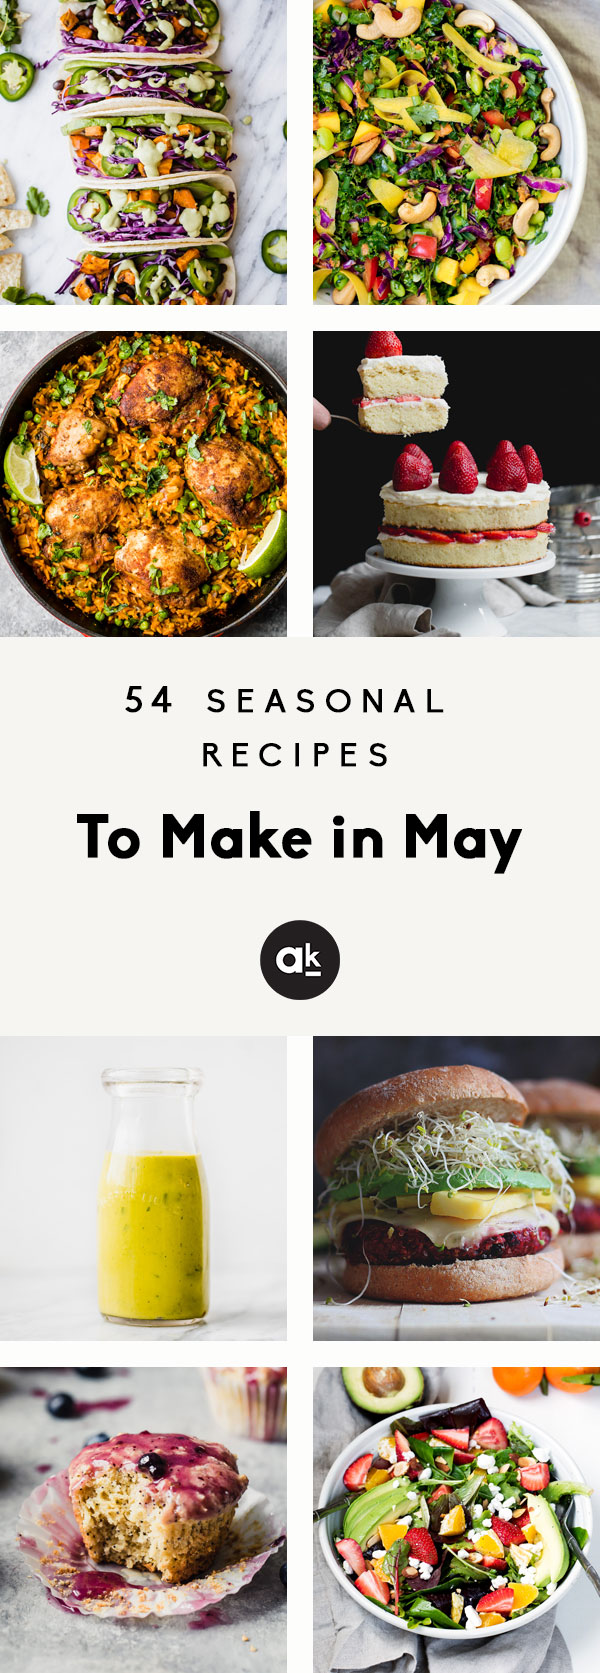 Collage of seasonal recipes to make in May